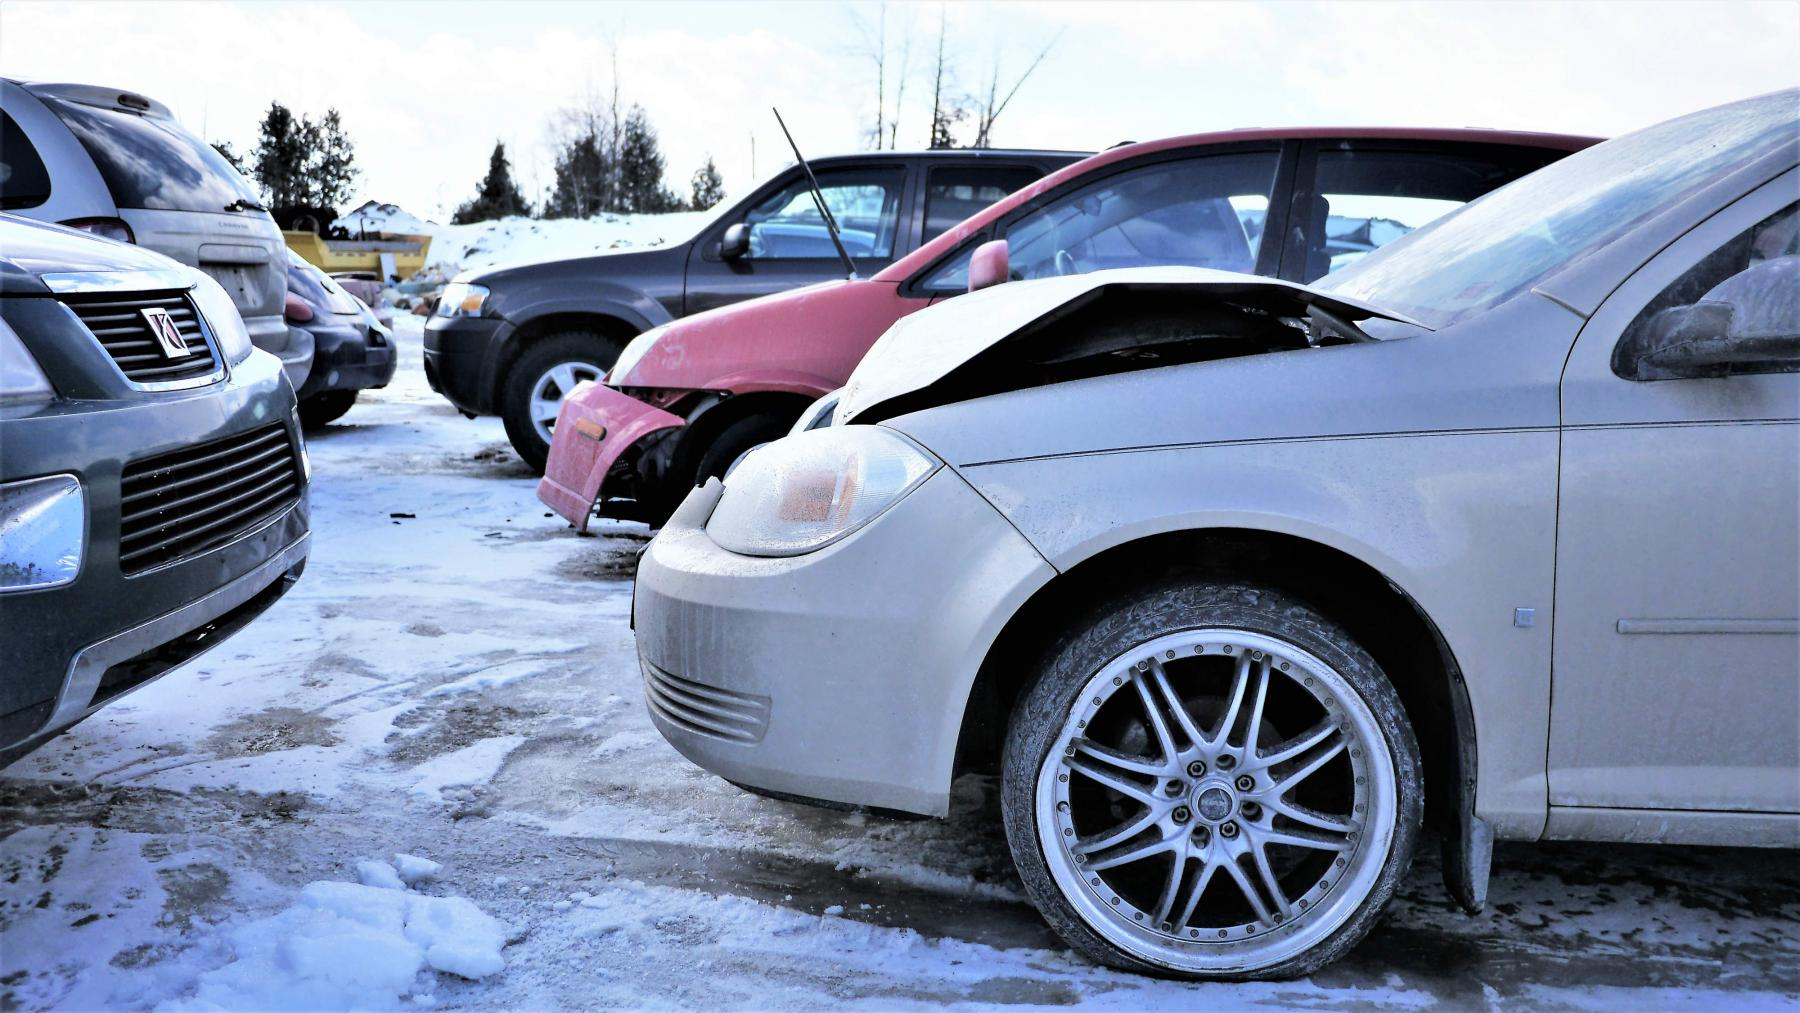 Scrap car removal and Junk vehicle recycling in Ottawa | Cash for Trash